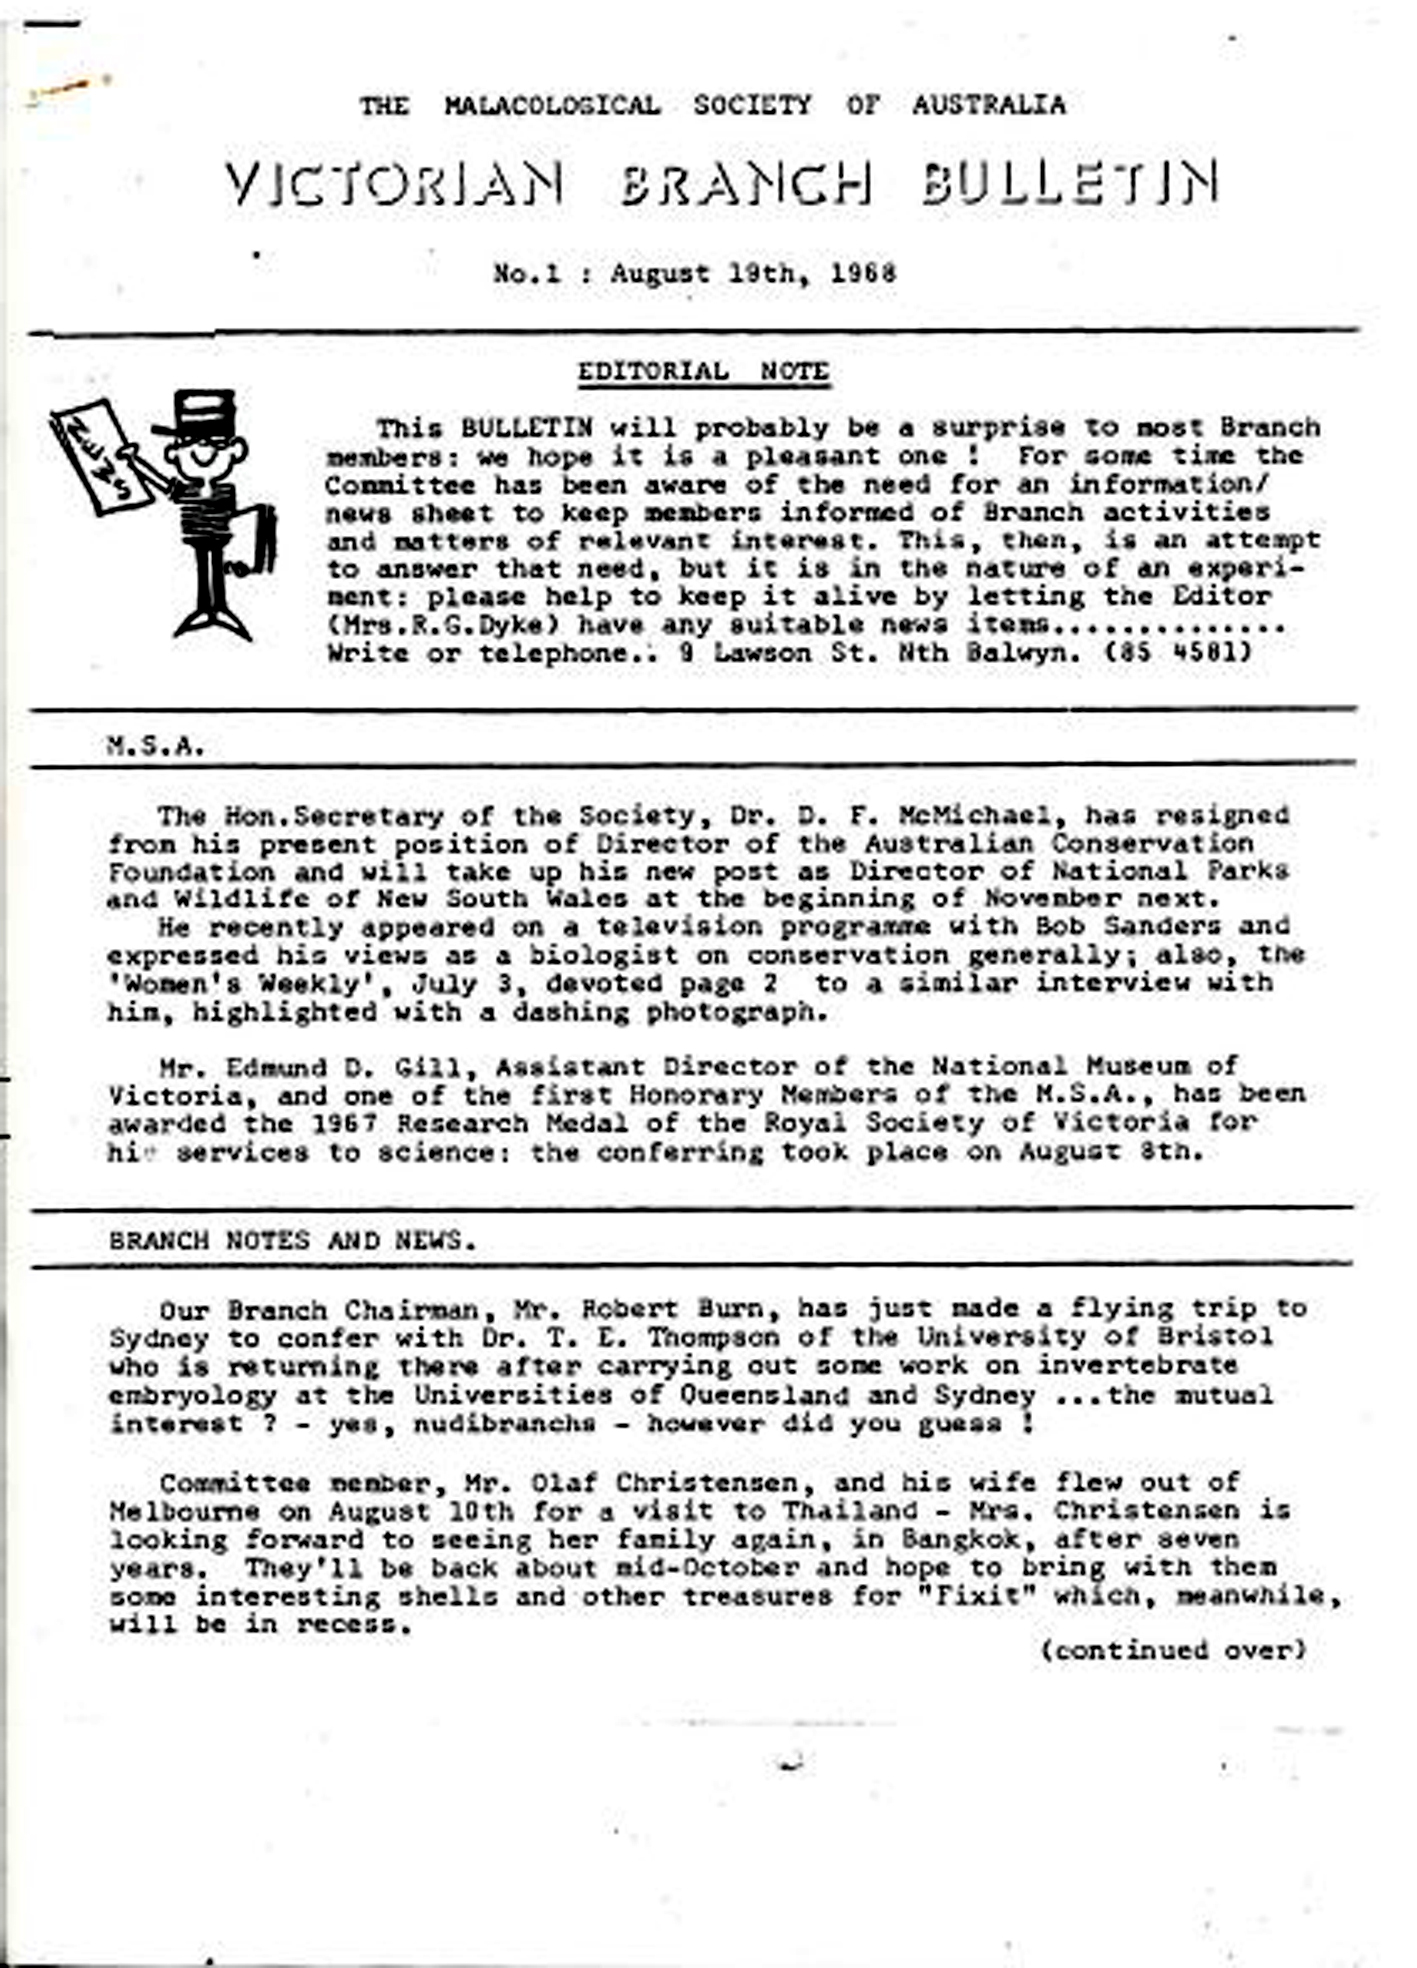 First page of the first issue of the MSA Victorian Branch Bulletin in 1968